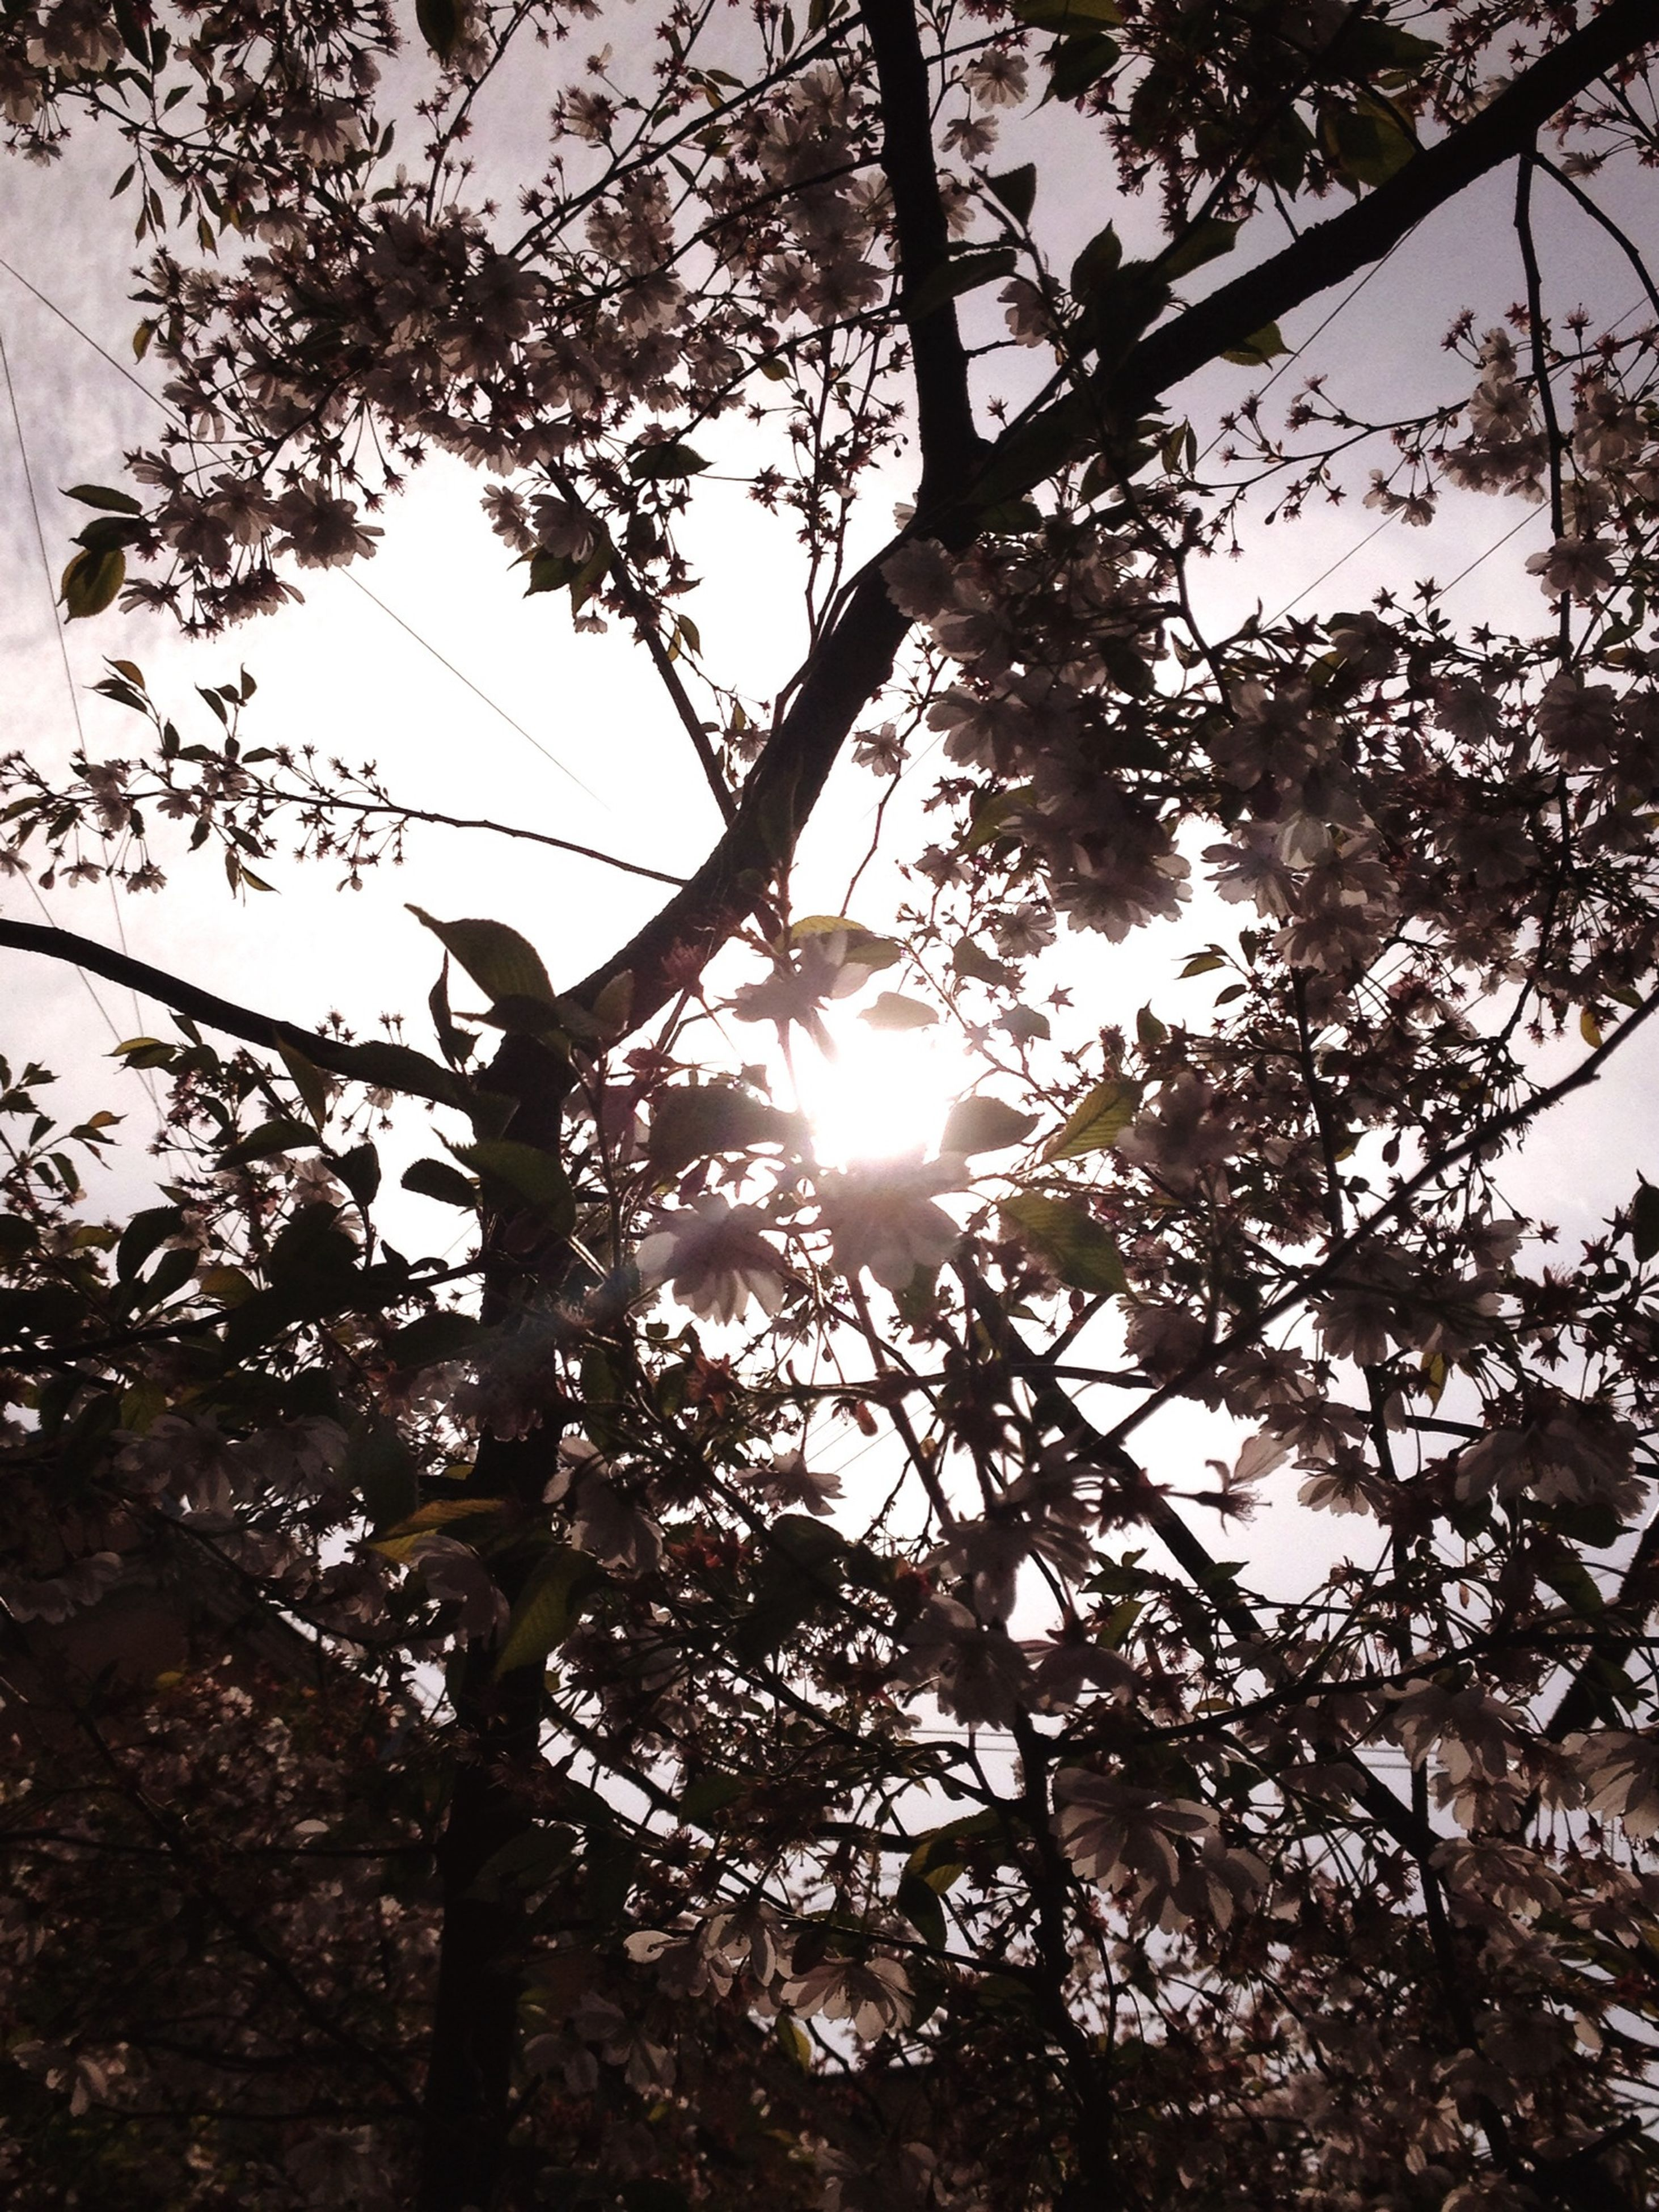 tree, sun, low angle view, branch, silhouette, tranquility, growth, sunlight, nature, sunbeam, sky, beauty in nature, lens flare, tree trunk, back lit, scenics, tranquil scene, sunset, outdoors, no people